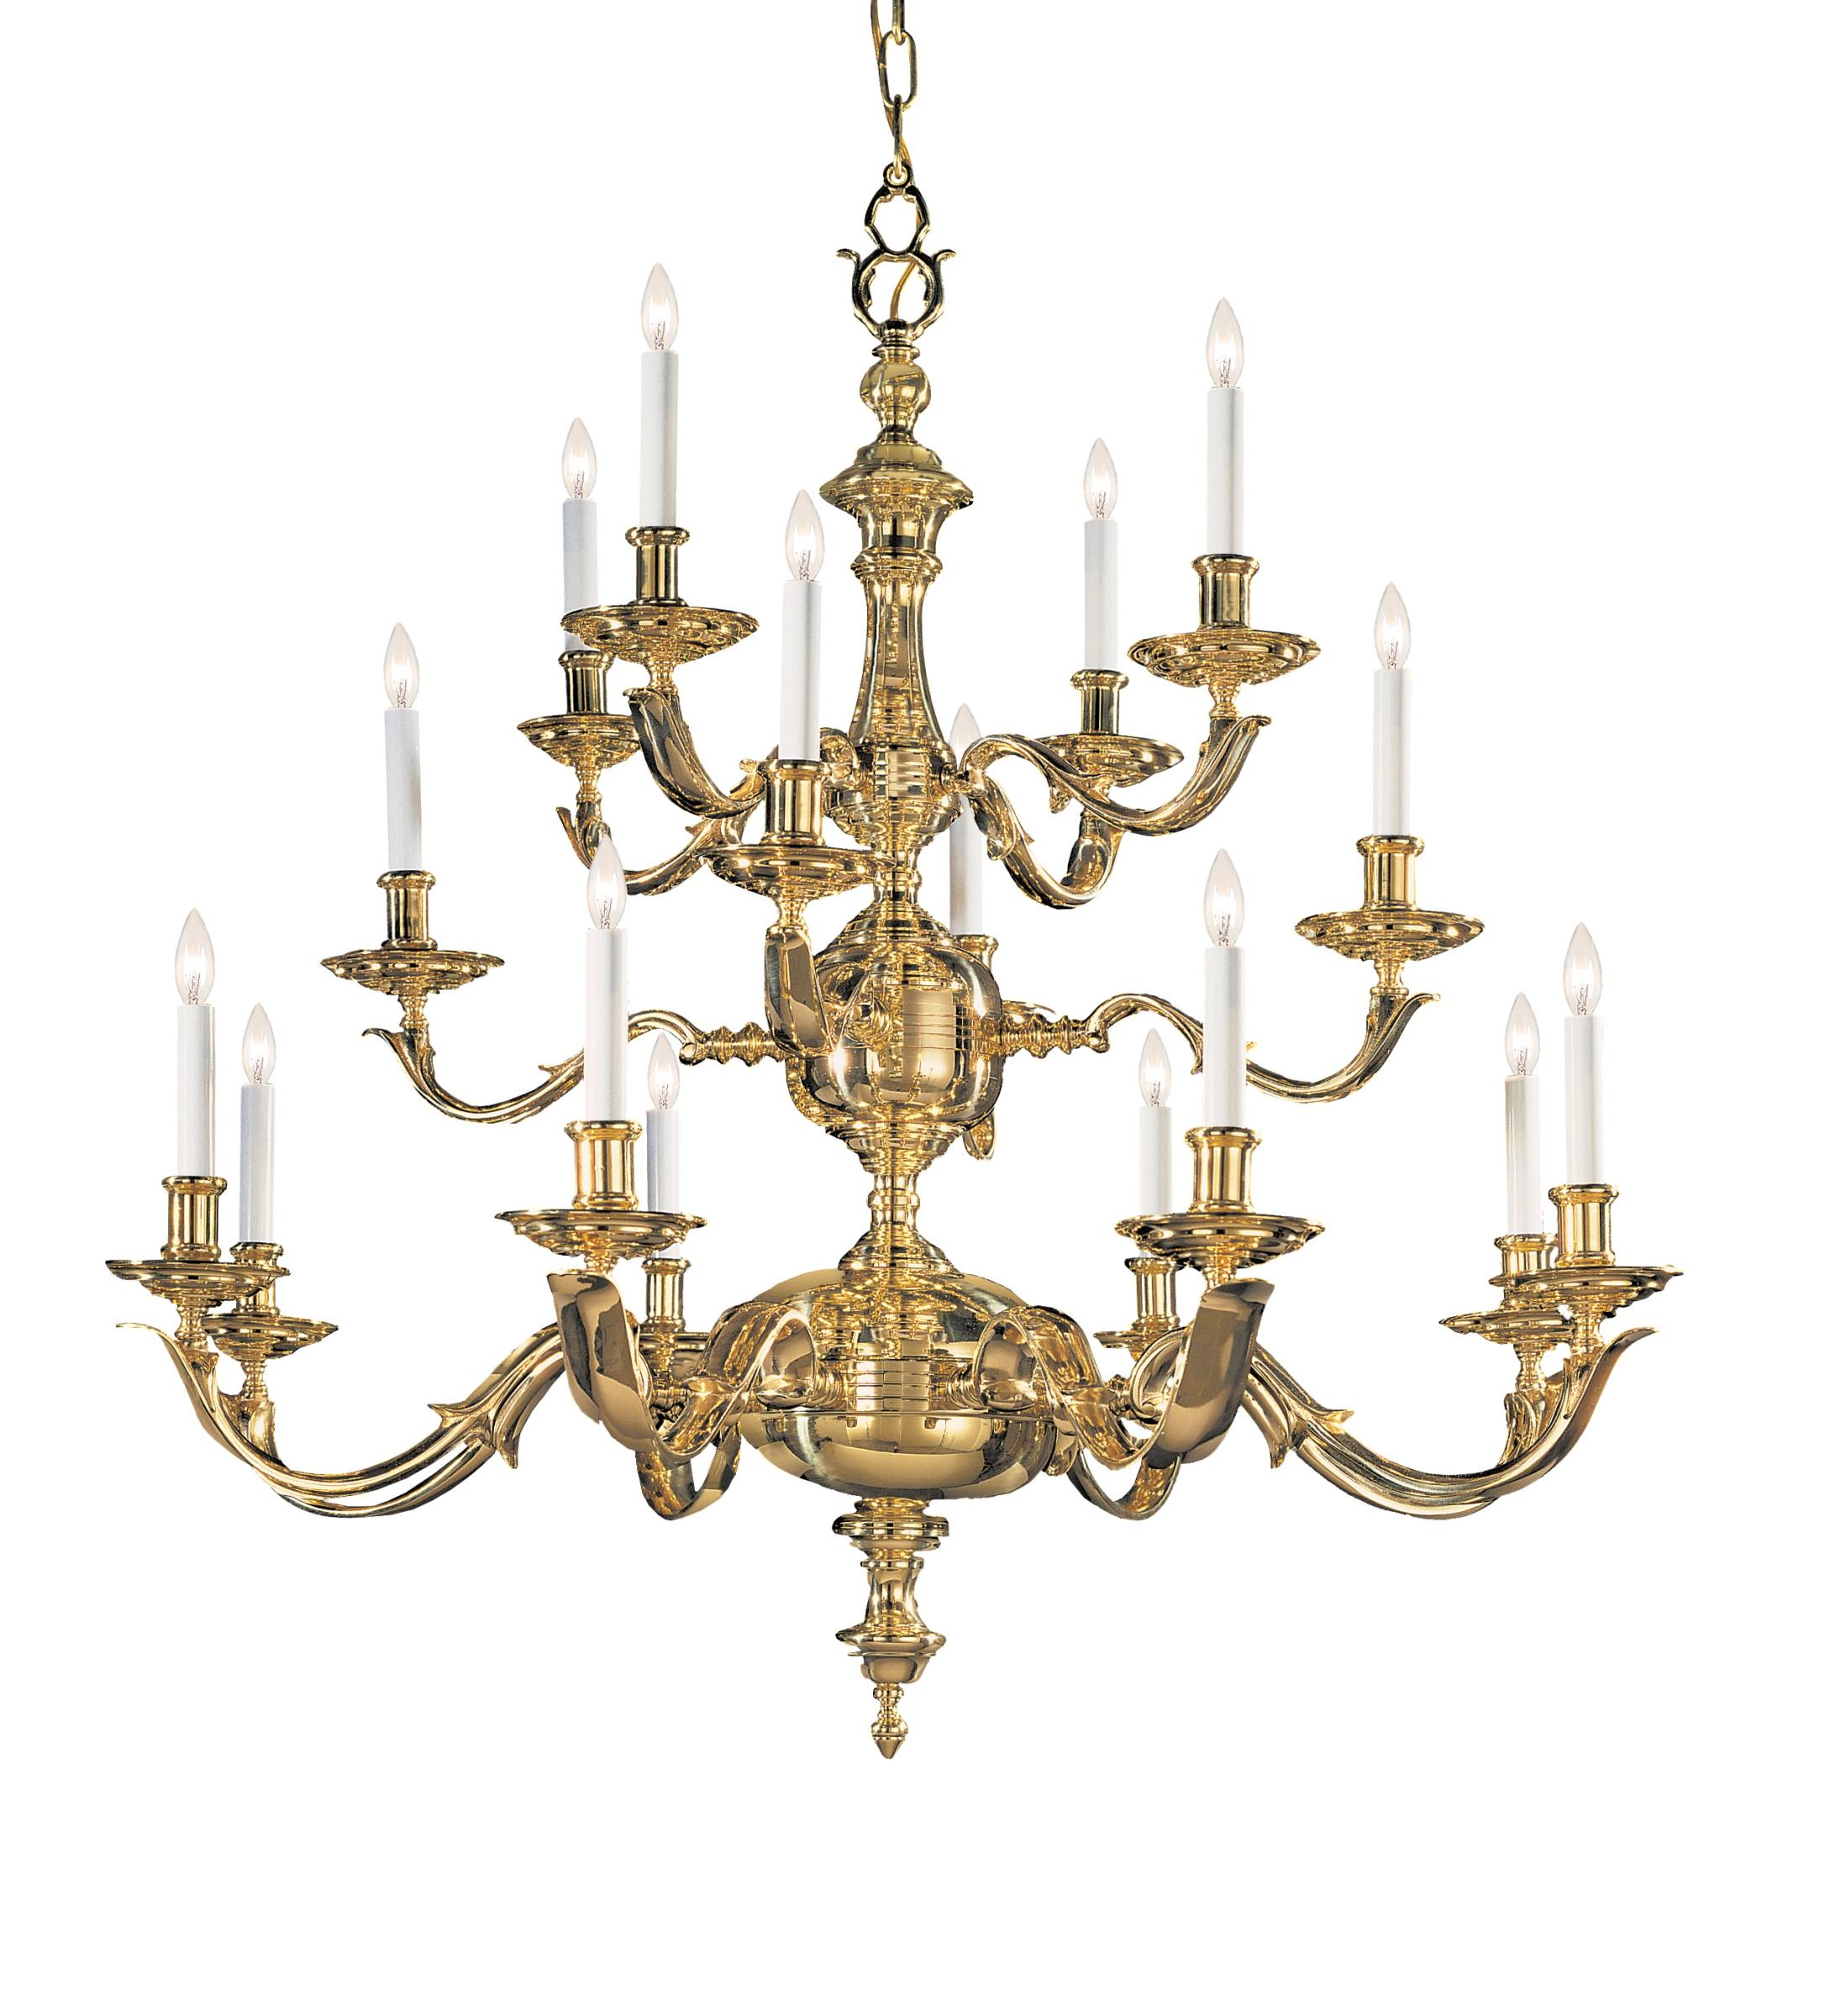 Brass Chandelier Home Designs For Traditional Brass Chandeliers (#1 of 12)